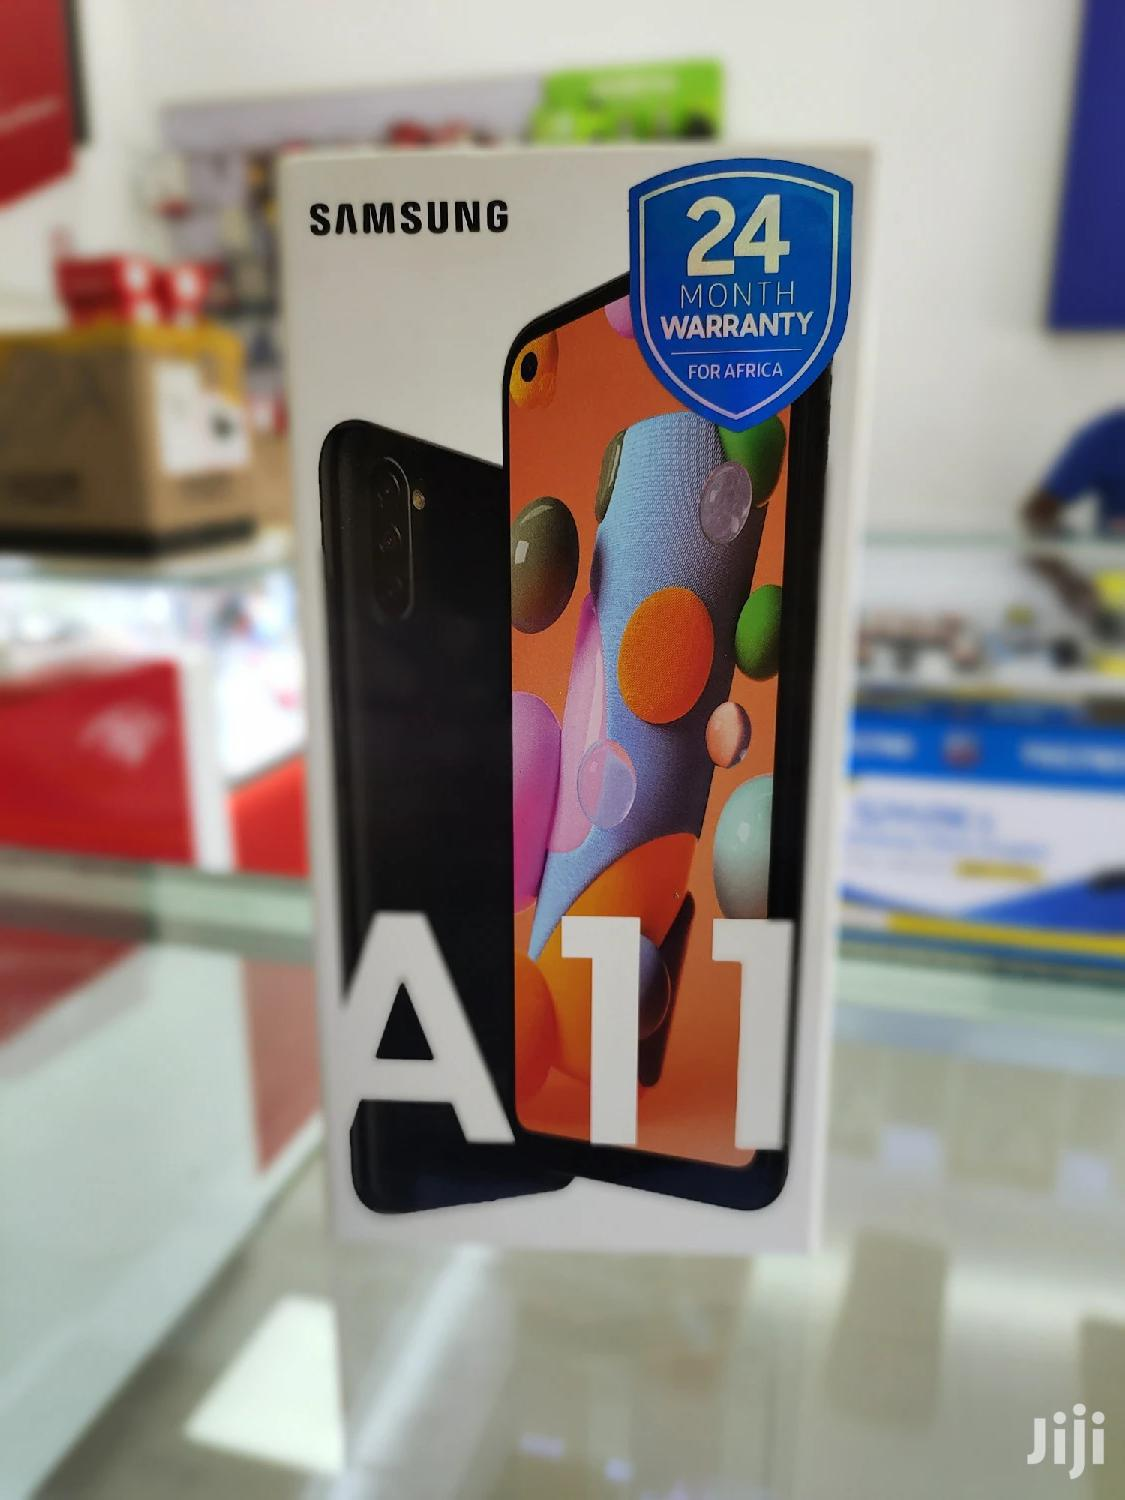 Archive: New Samsung Galaxy A11 32 GB Black